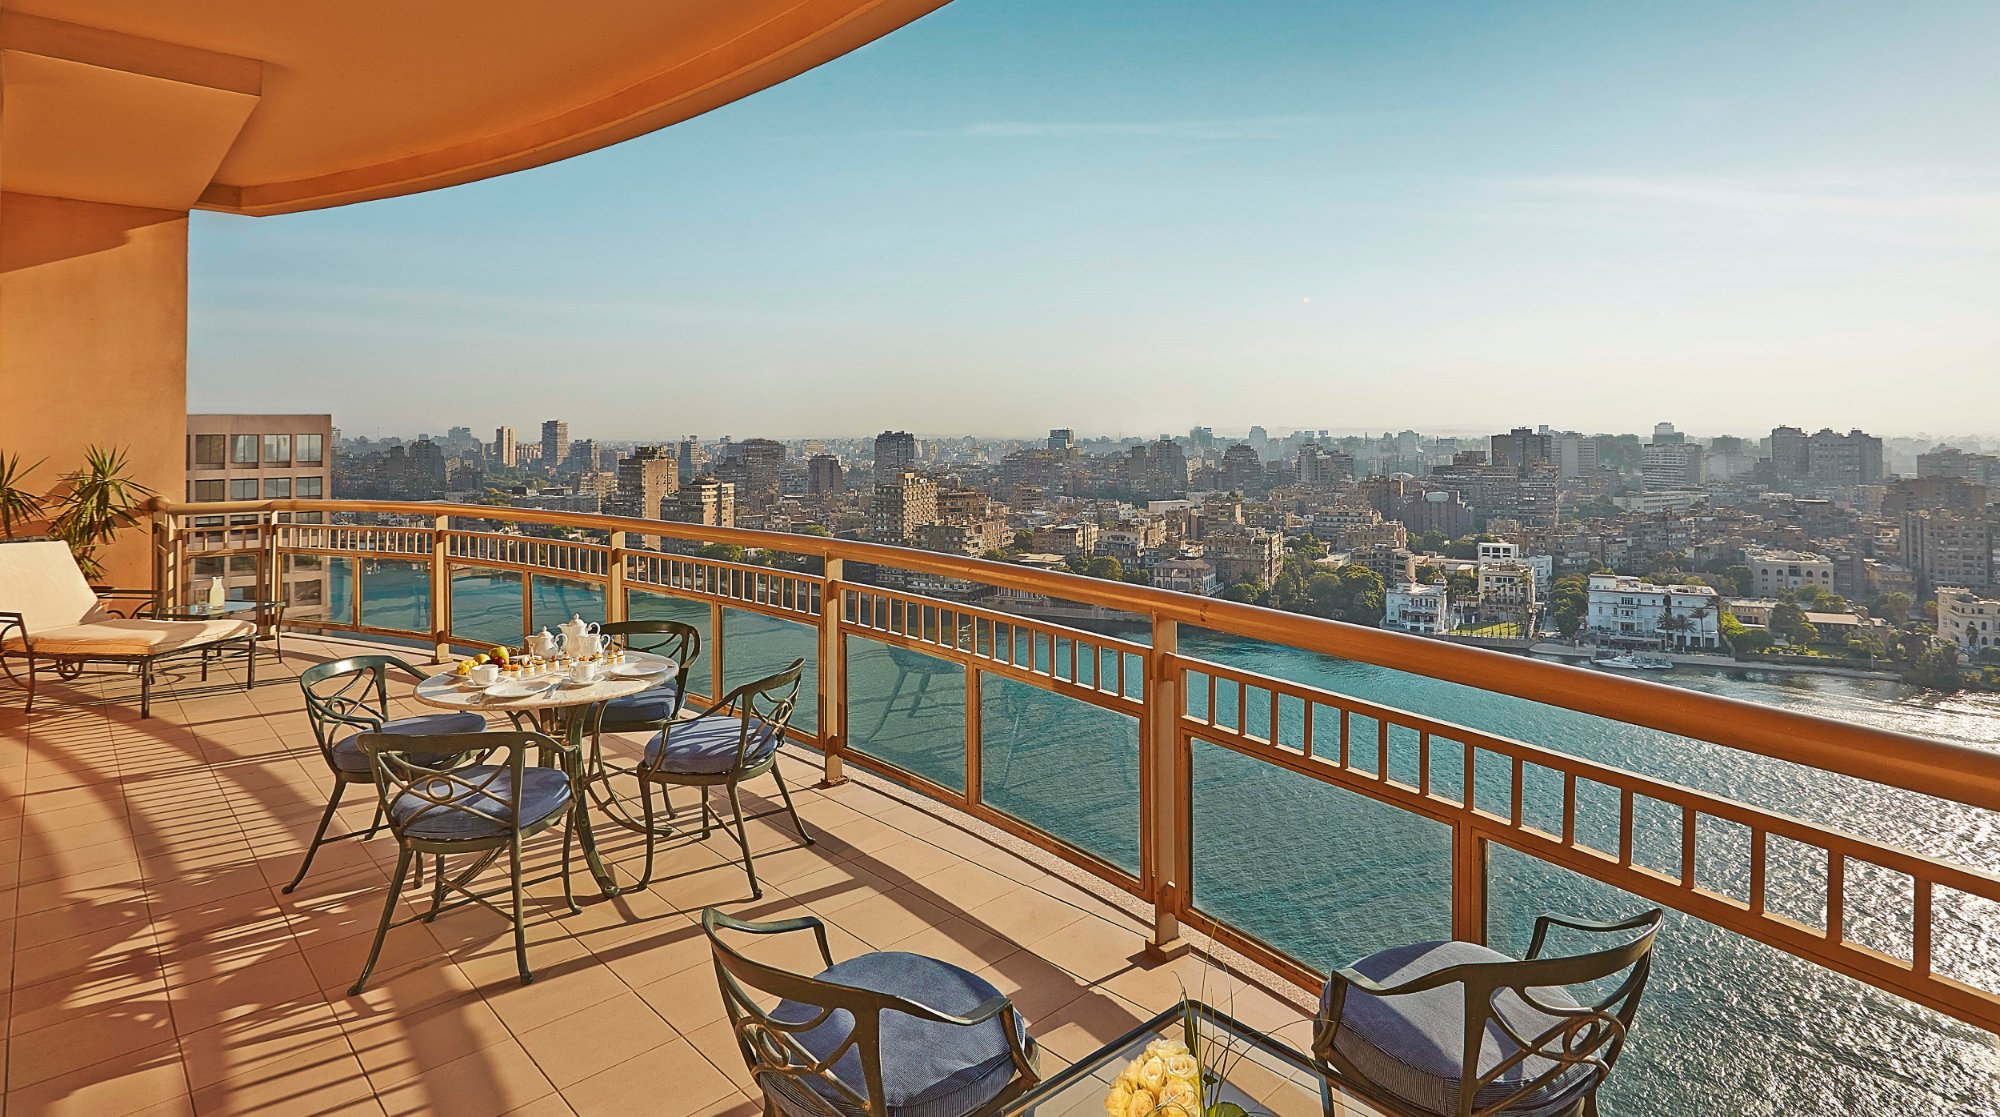 Popul re hoteller i kairo tripadvisor for Terrace hilton zamalek